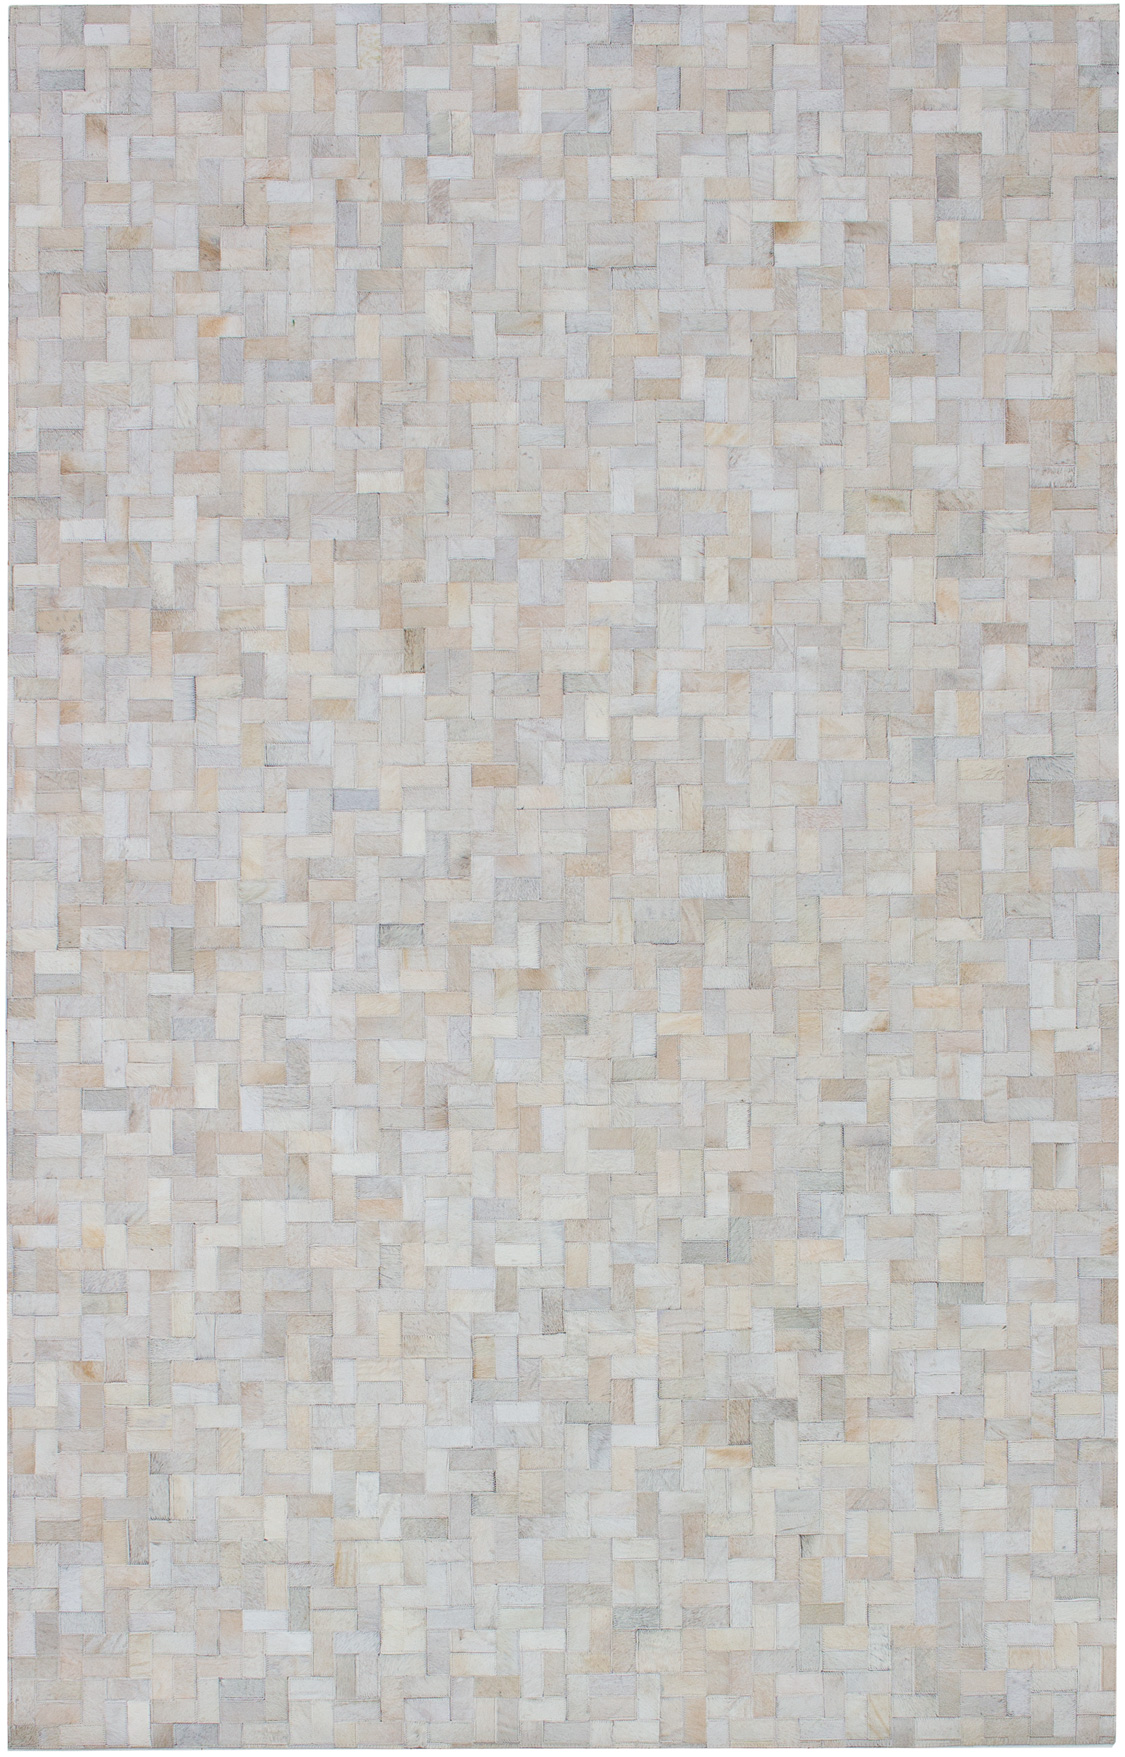 """Handmade Cowhide Patchwork Ivory Leather Rug 5'0"""" x 7'11"""" Size: 5'0"""" x 7'11"""""""